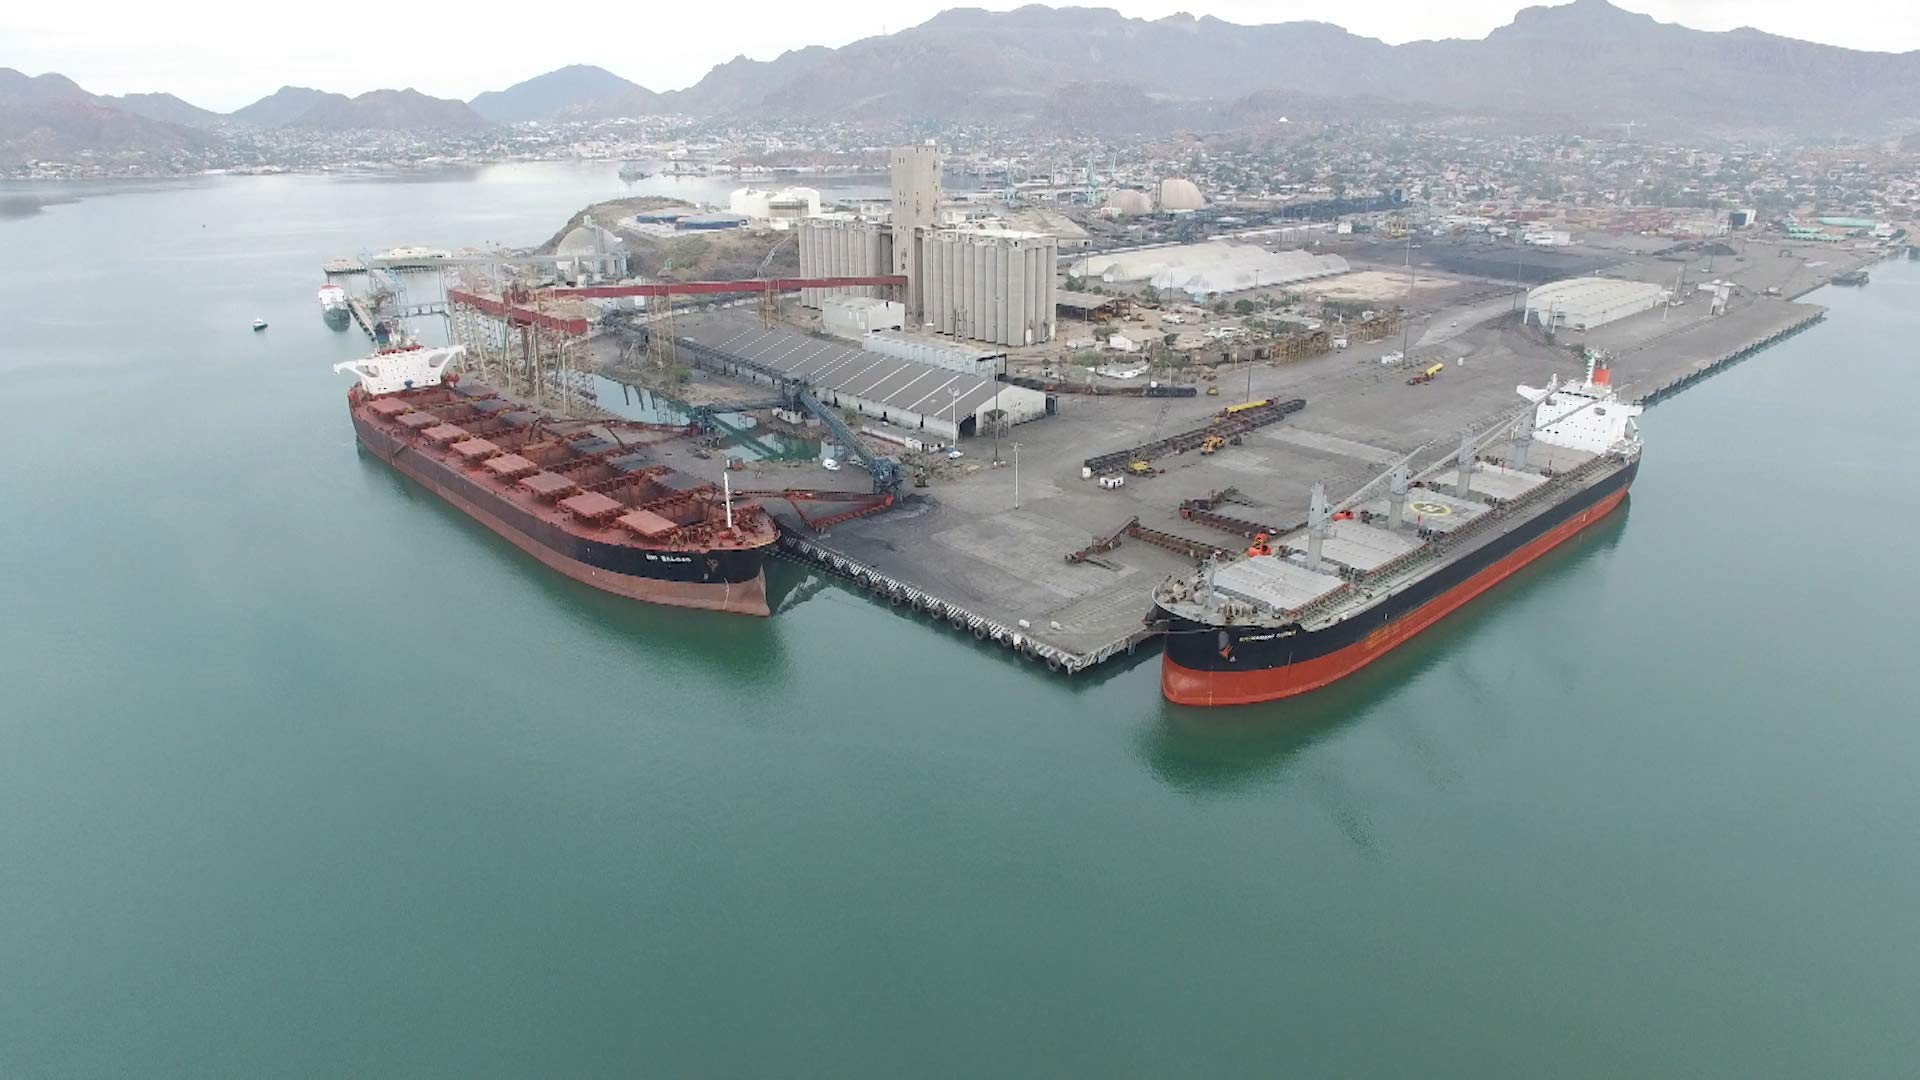 The Port of Guaymas, Mexico.